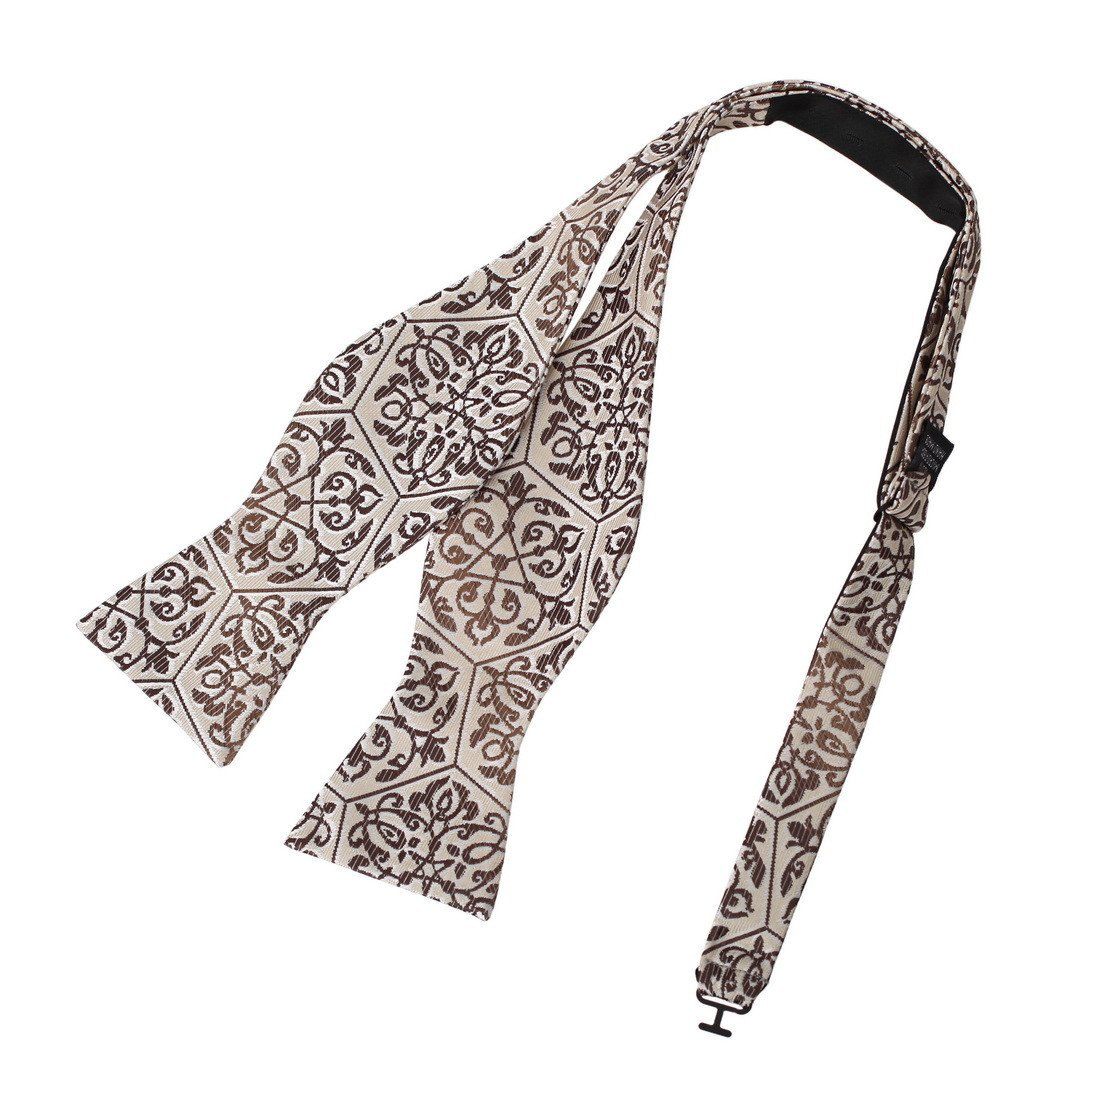 Dan Smith Mens Fashion Gift Patterned Microfiber Mens Self-tied Bowtie With Free Gift Box